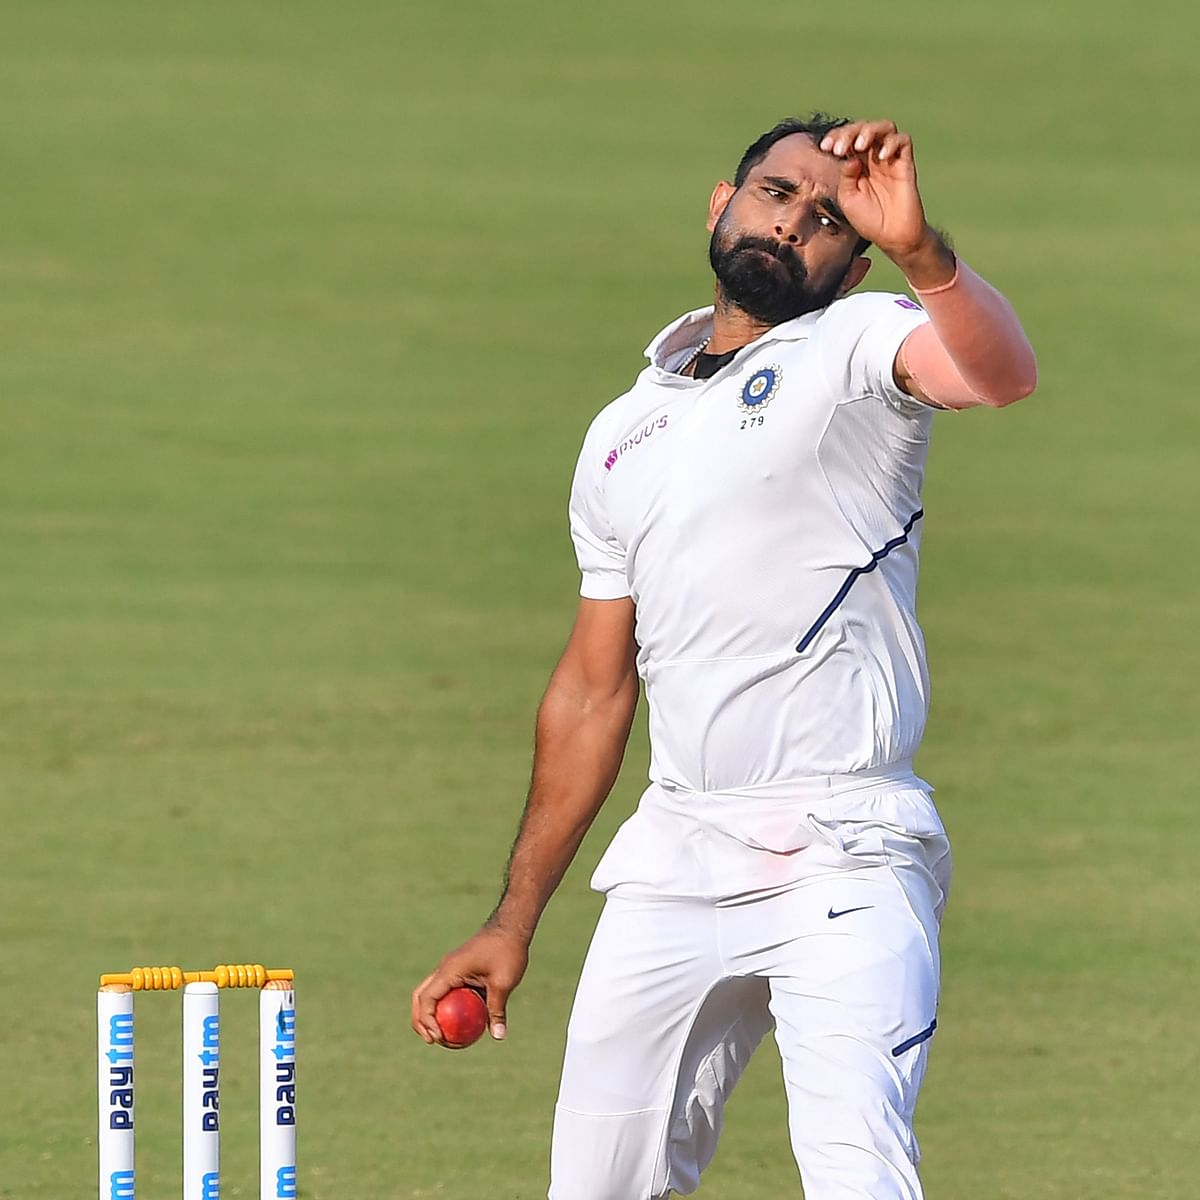 'Second Innings' Shami reveals how he preys on batsman's fears